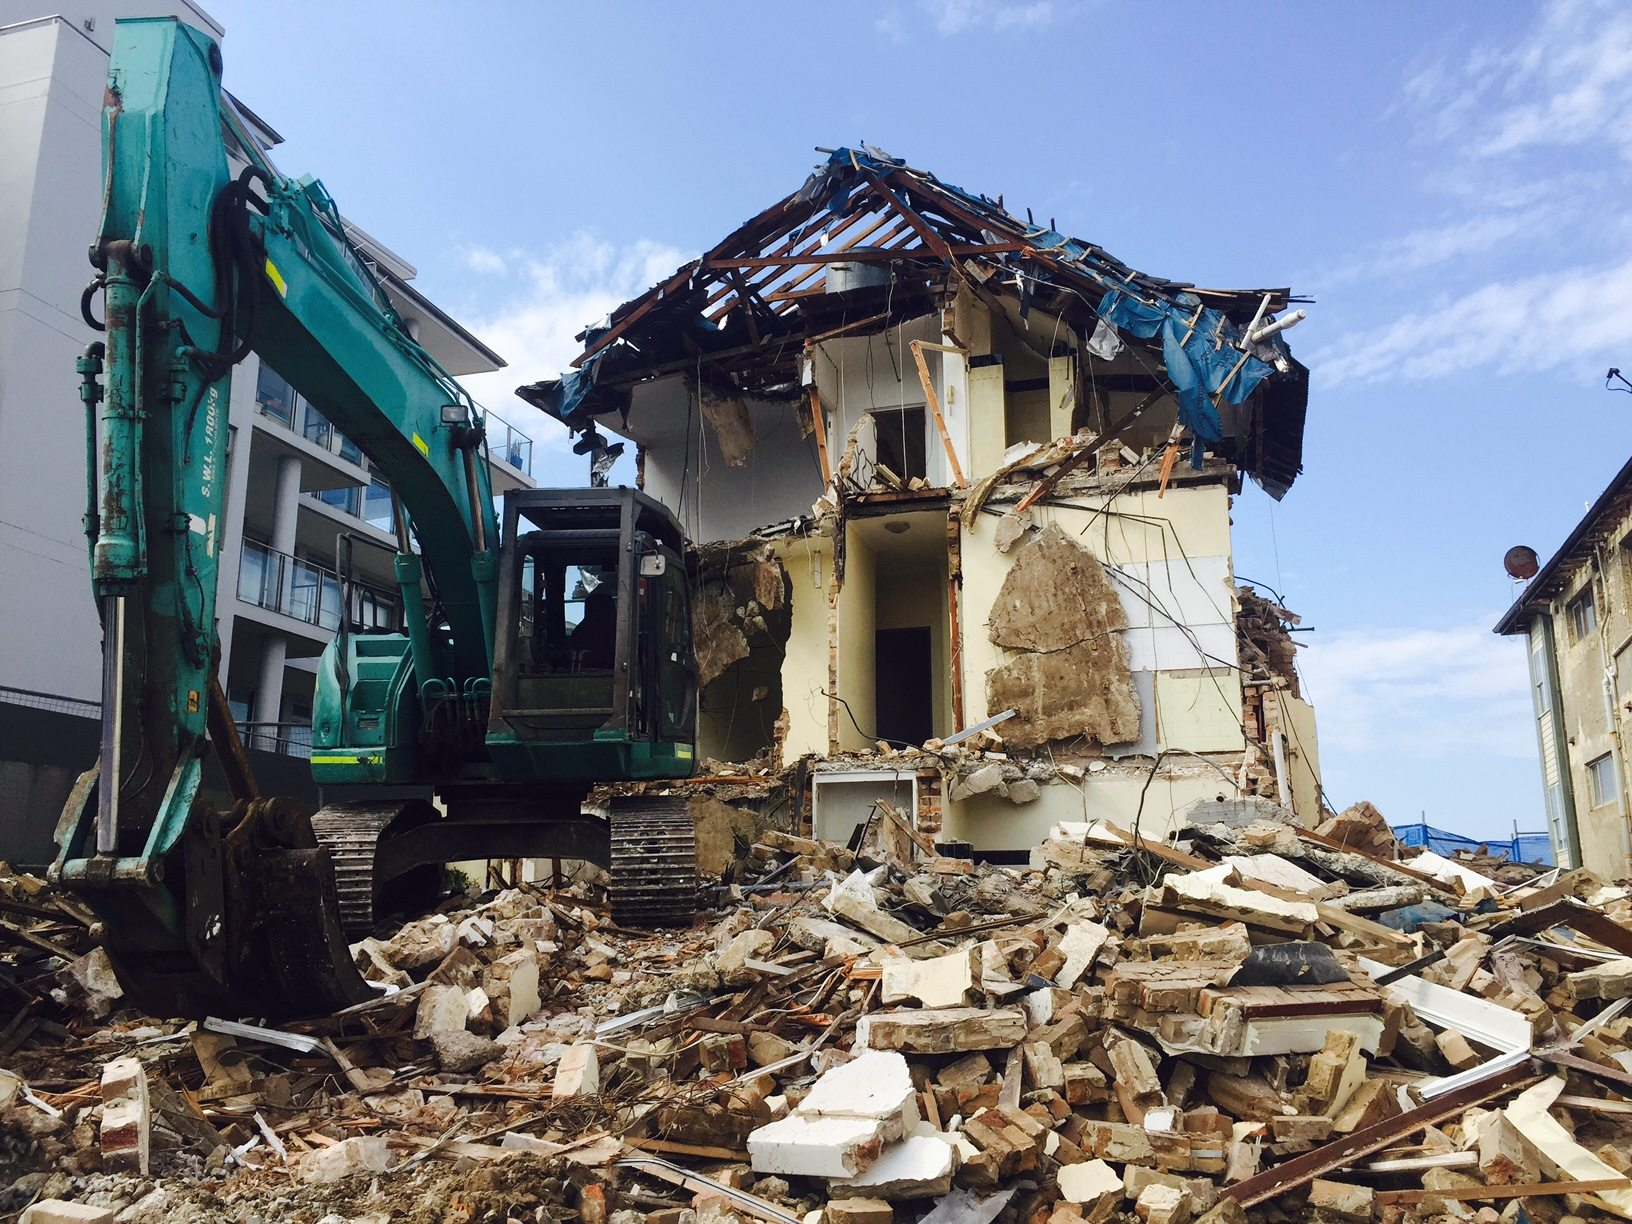 House and Partial Demolition